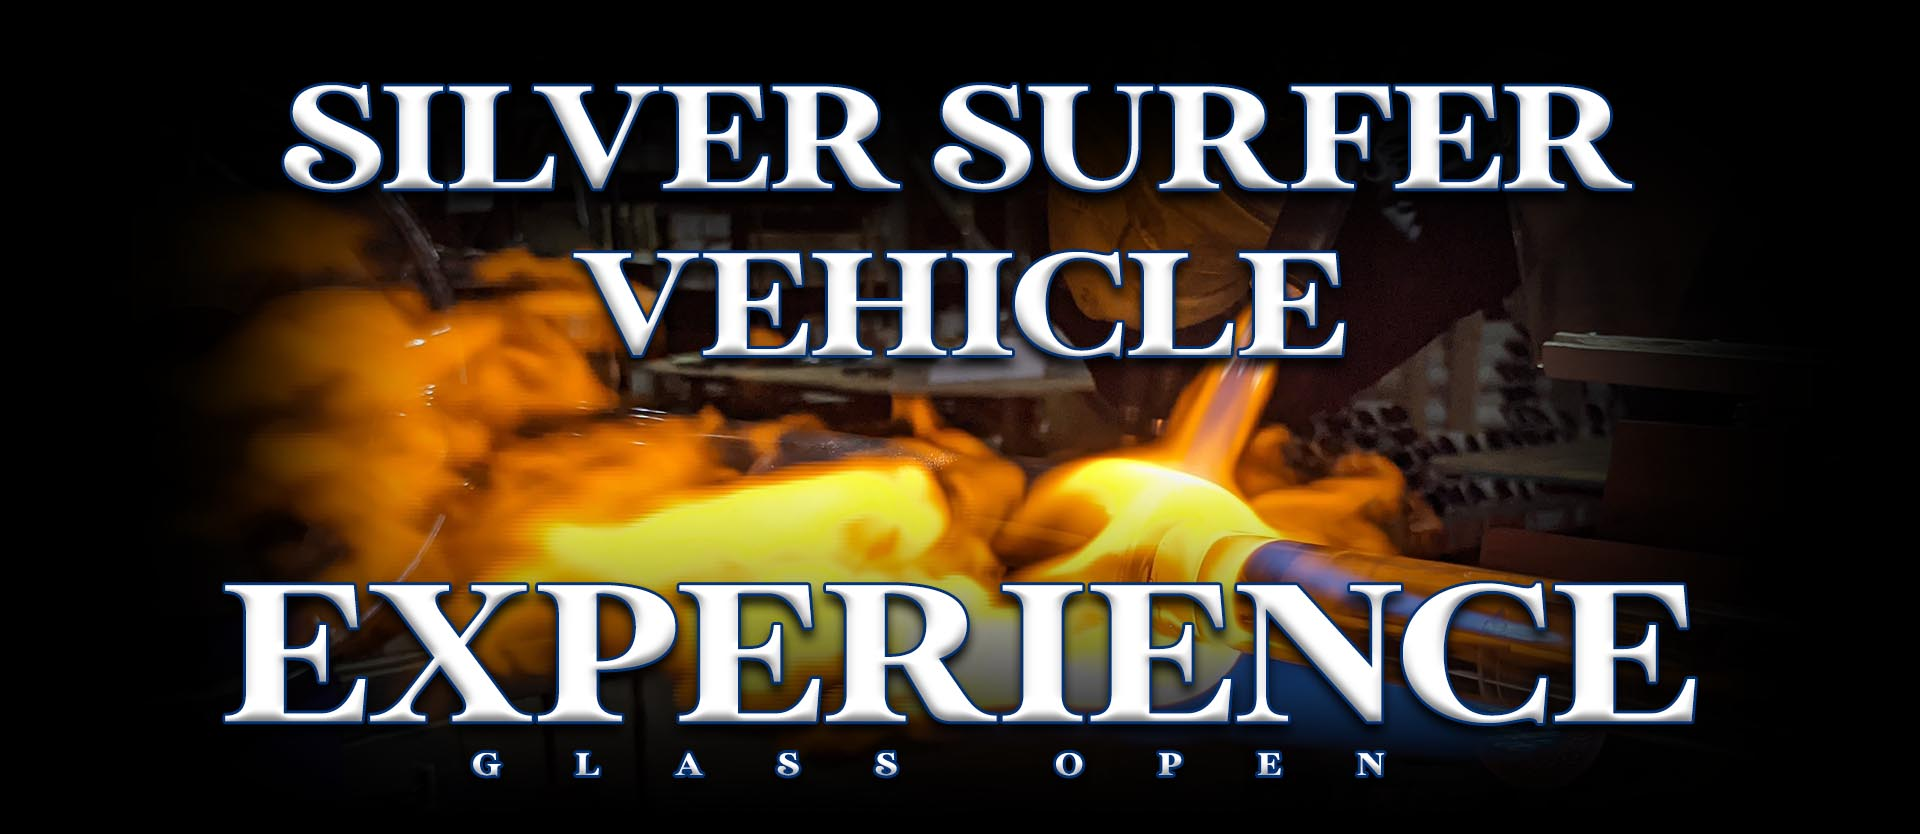 silver-surfer-experience-new-banner22.jpg